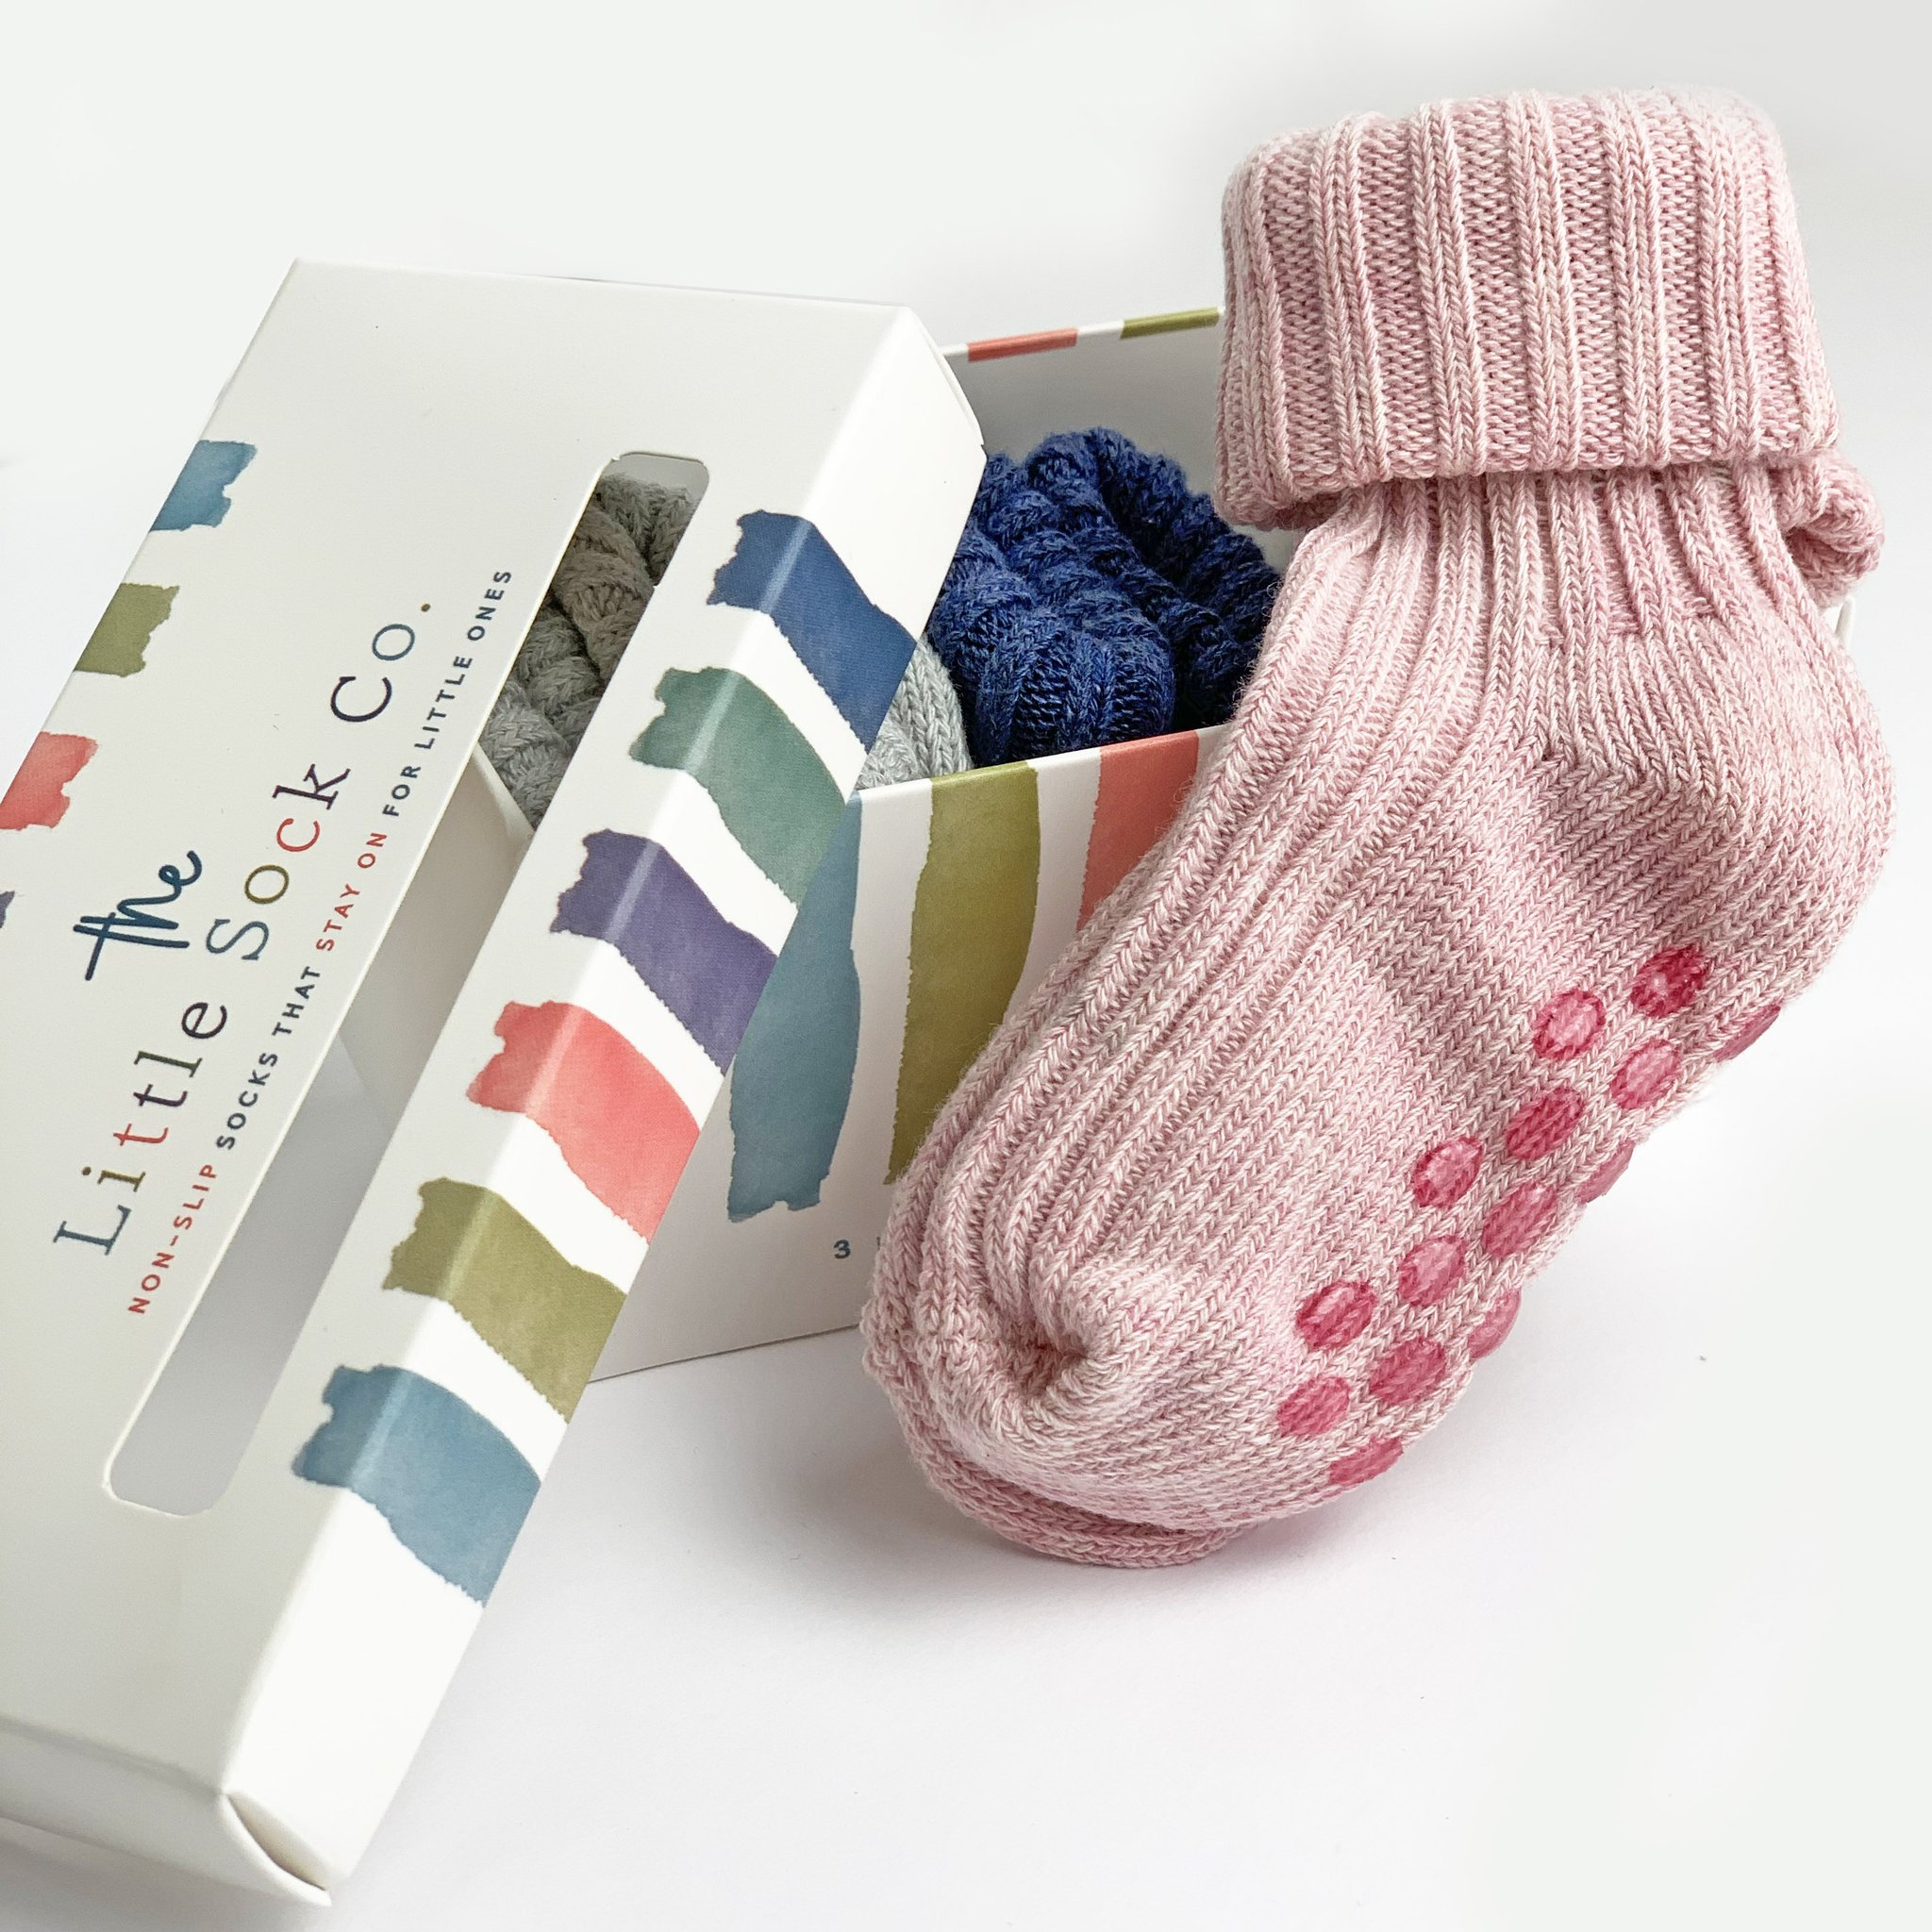 NON-SLIP STAY ON COTTON RIBBIES (3PAIRS) ROSE PINK, CLOUD AND NAVY